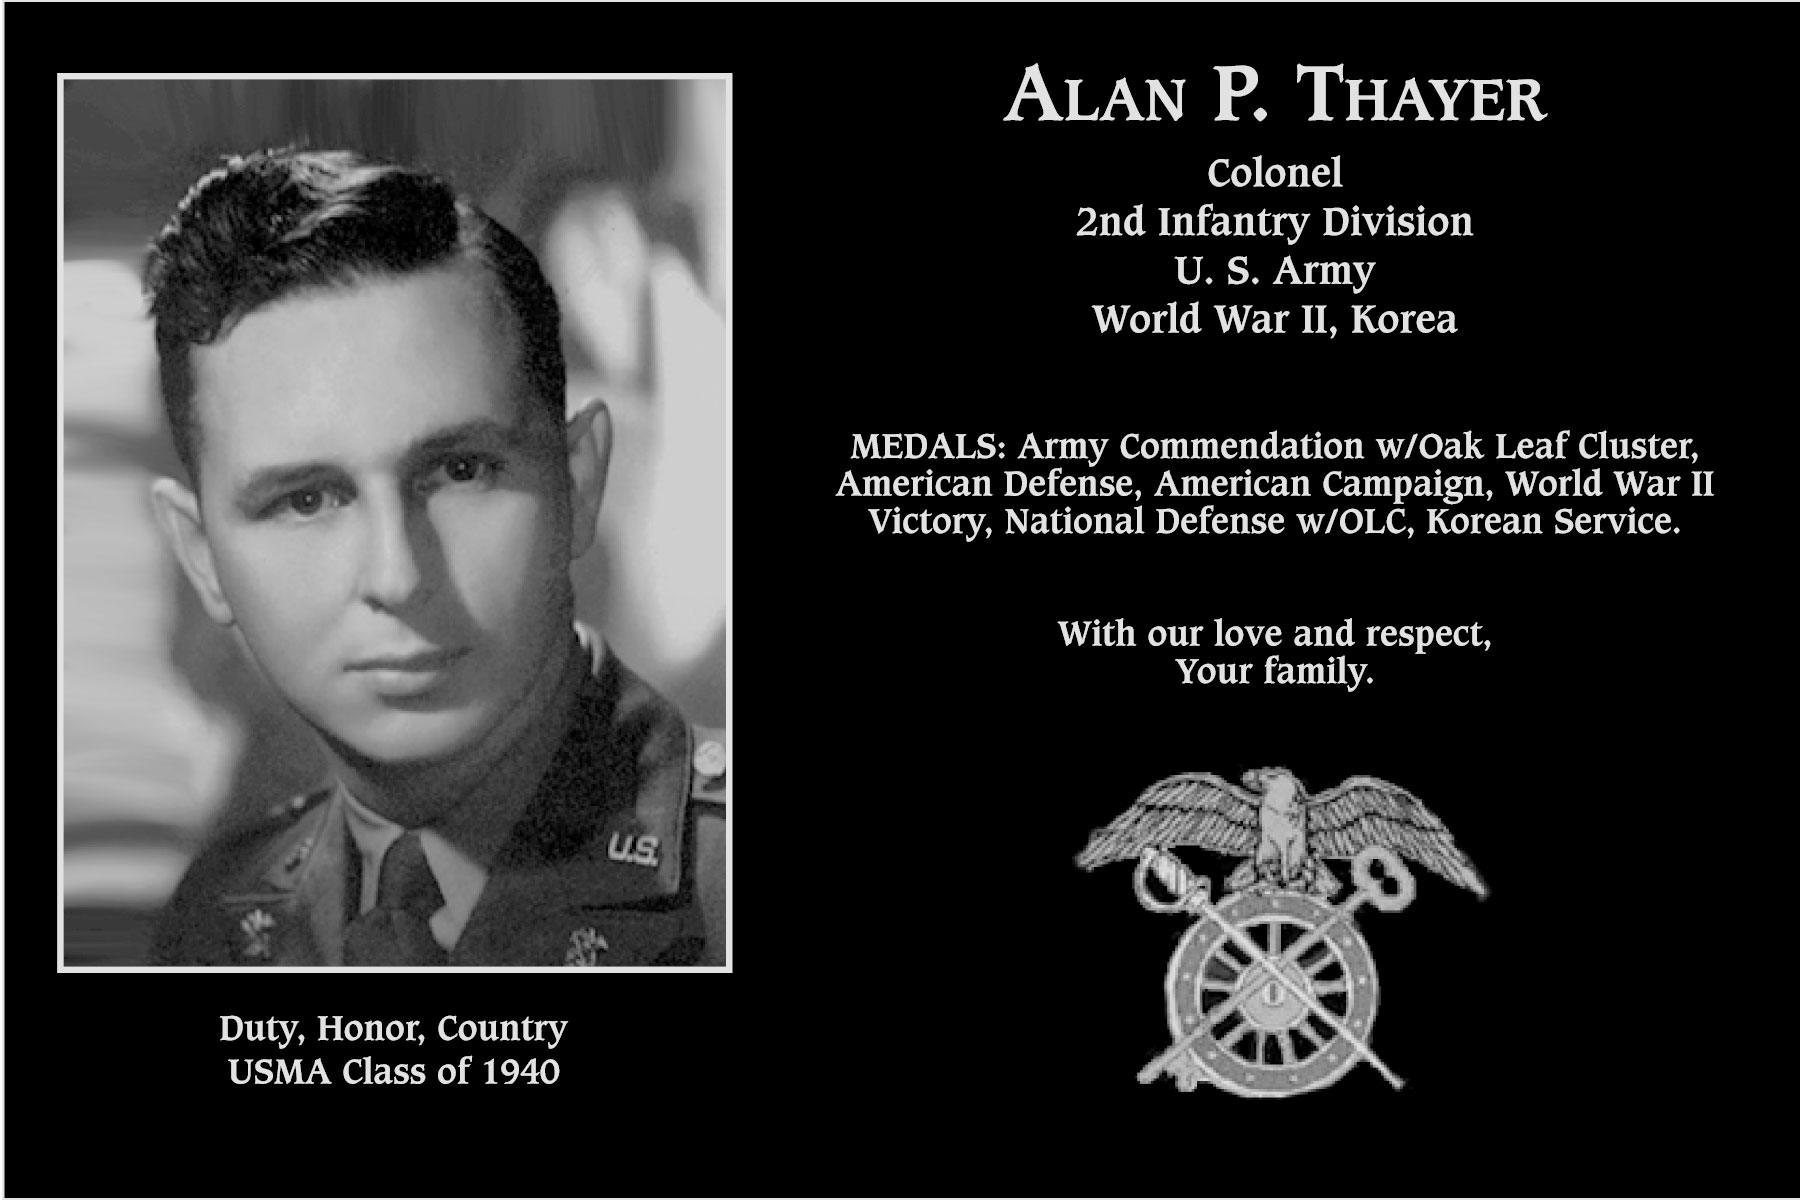 Alan P. Thayer